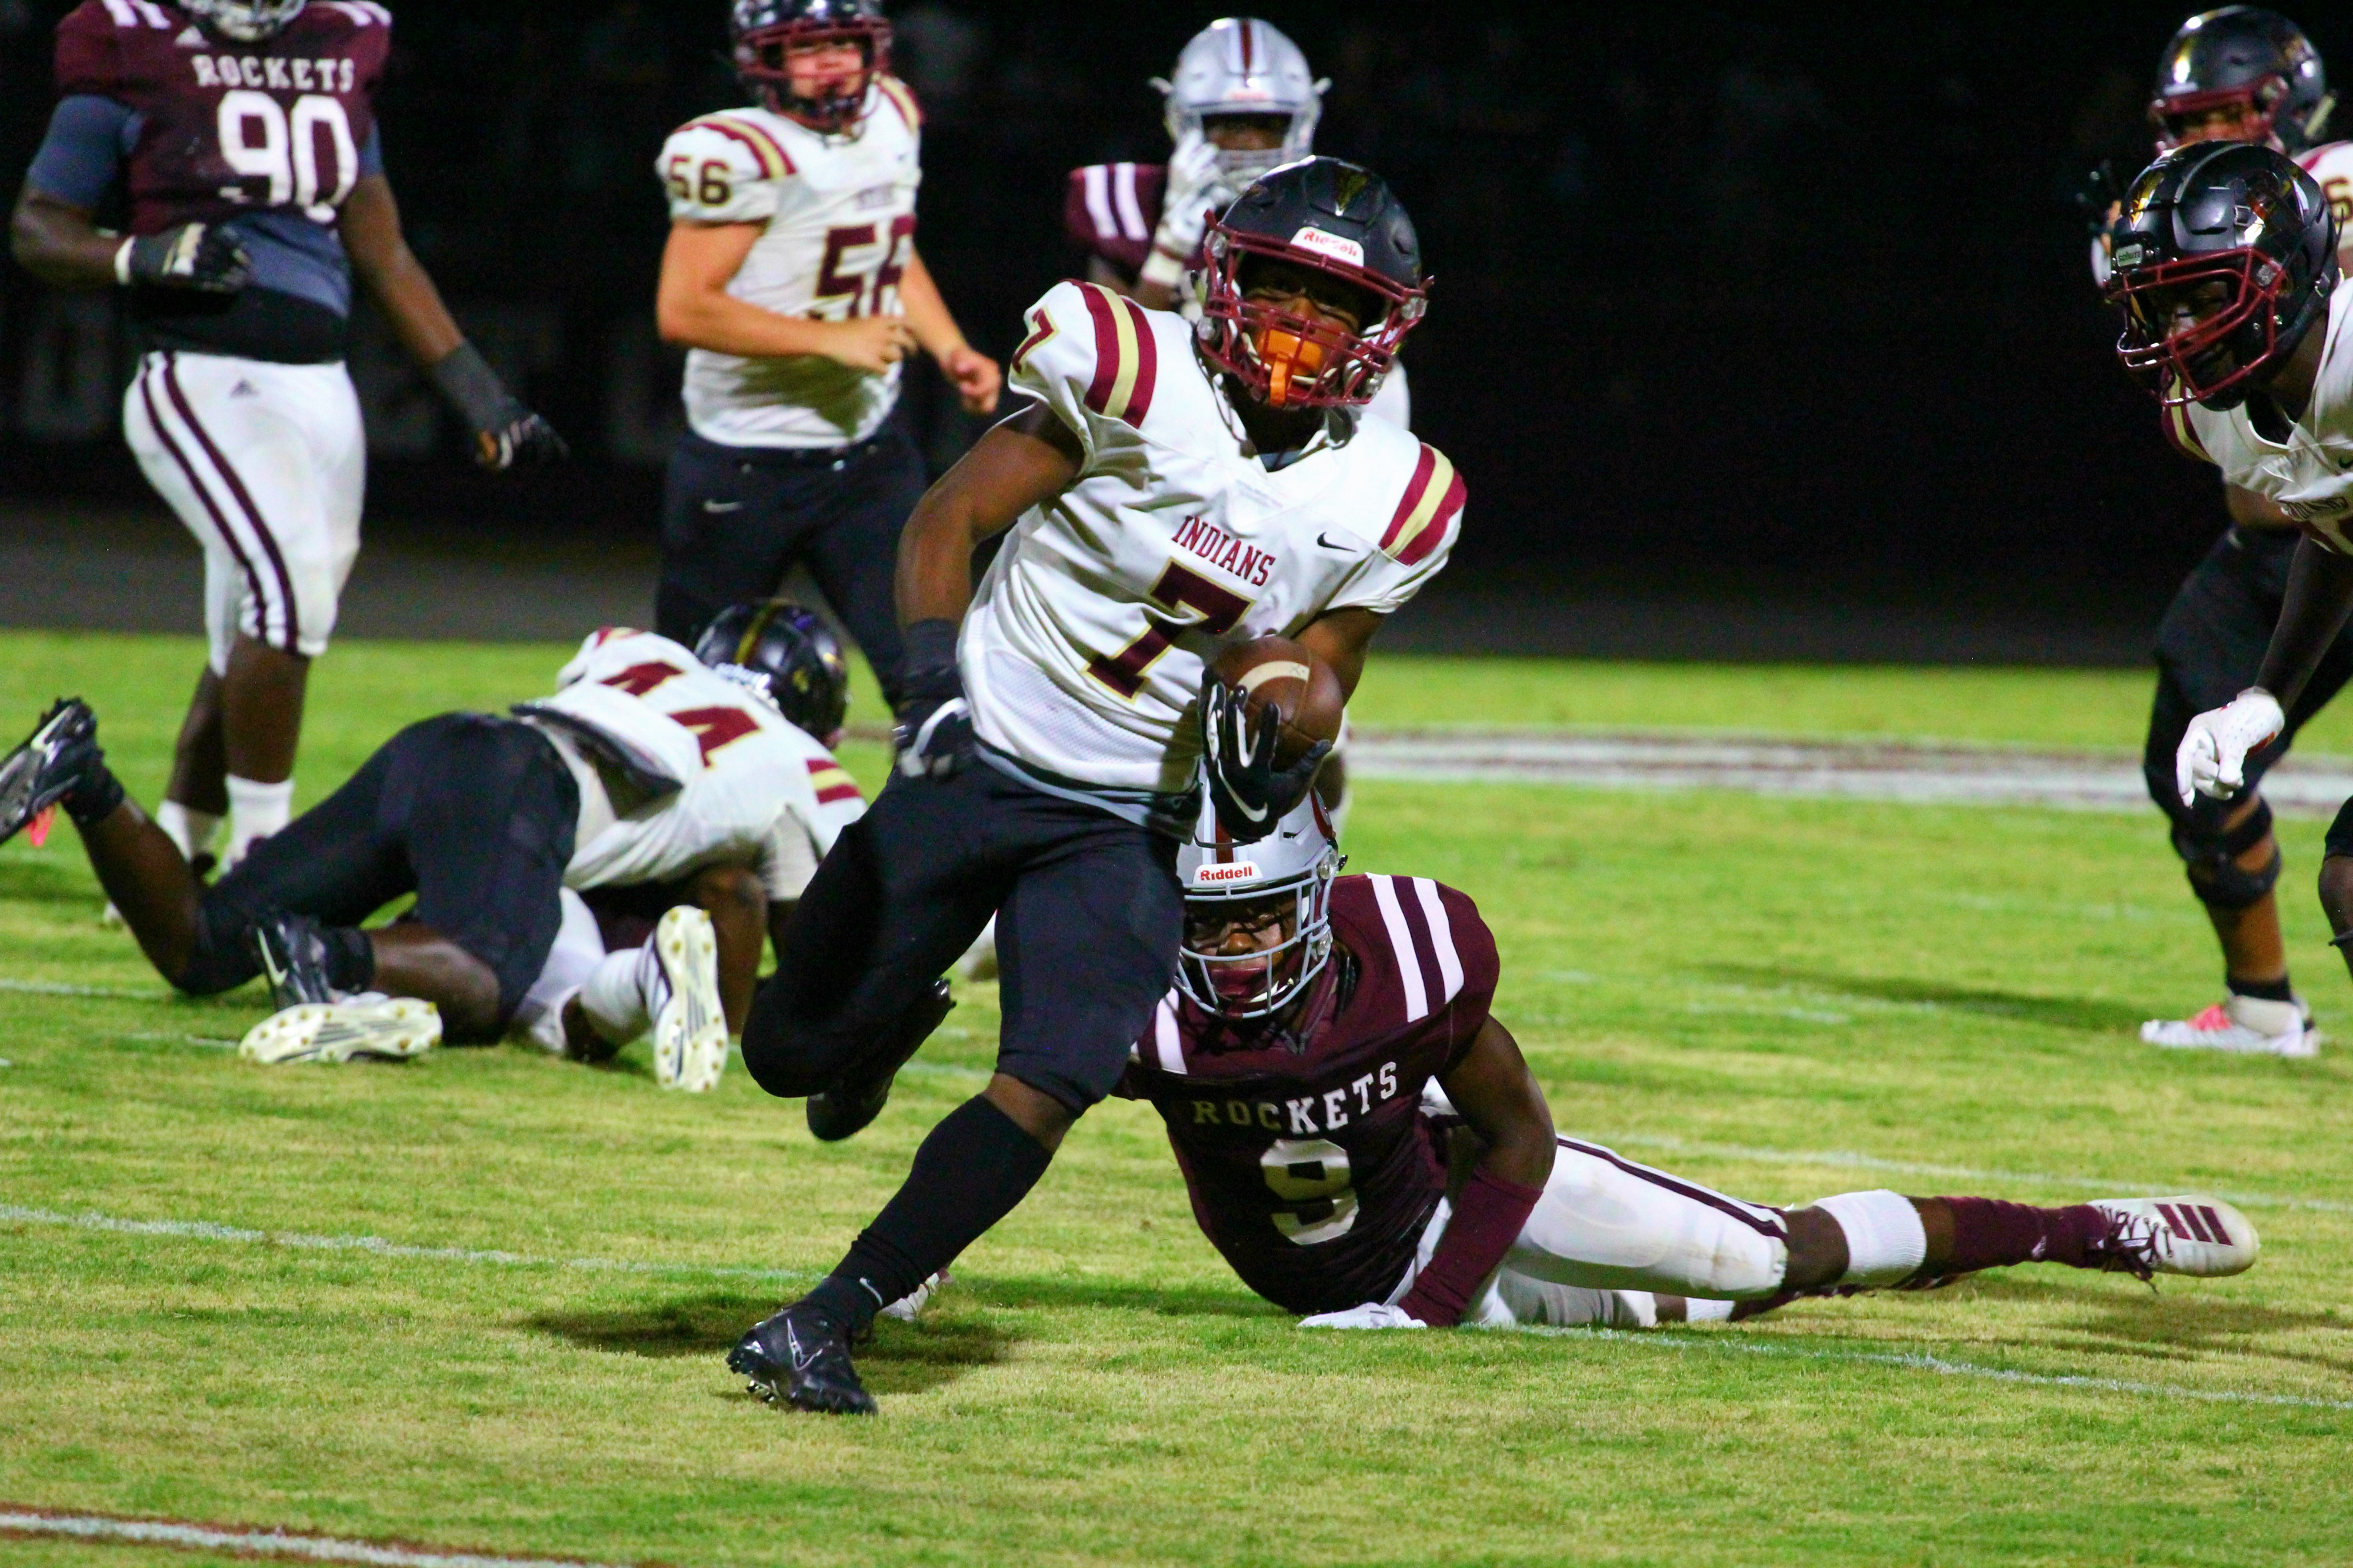 Pinson Valley grinds out victory over previously undefeated Gardendale